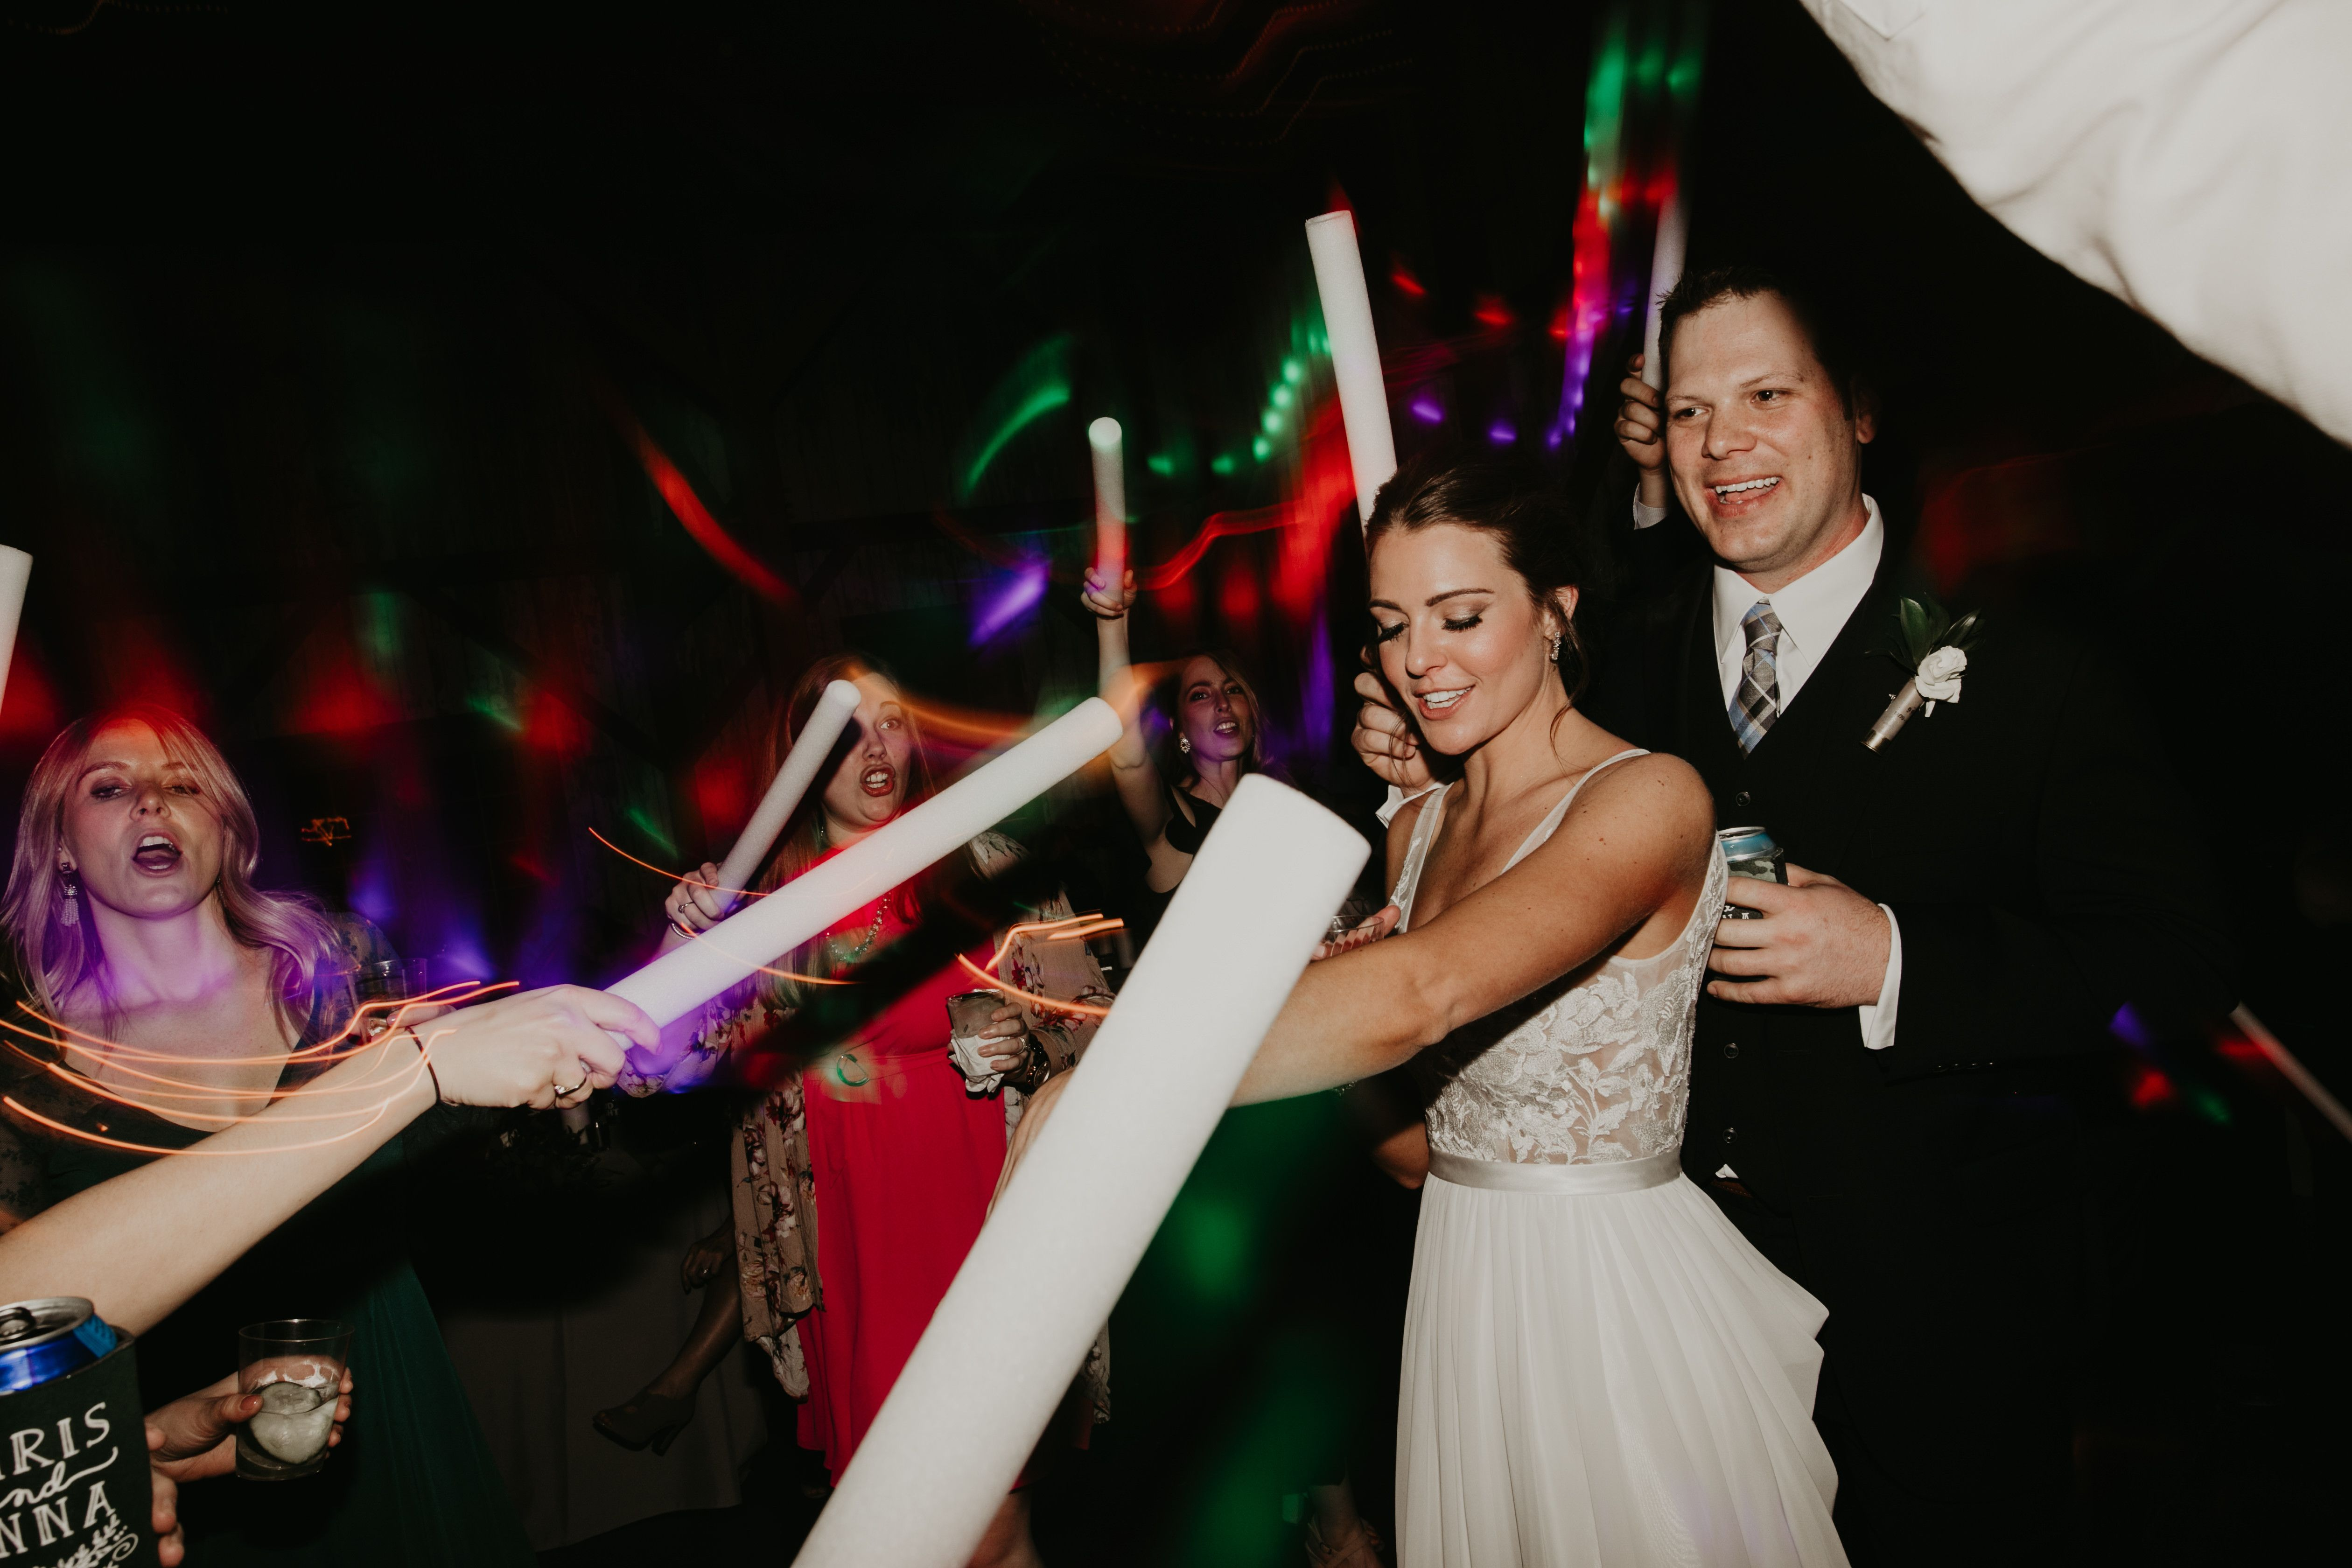 Get More Wedding Music Tips And Inspiration From Asheville North Carolina Wedding Dj And Musician Benjamin T Warne Wedding Music Wedding Dj Wedding Music List